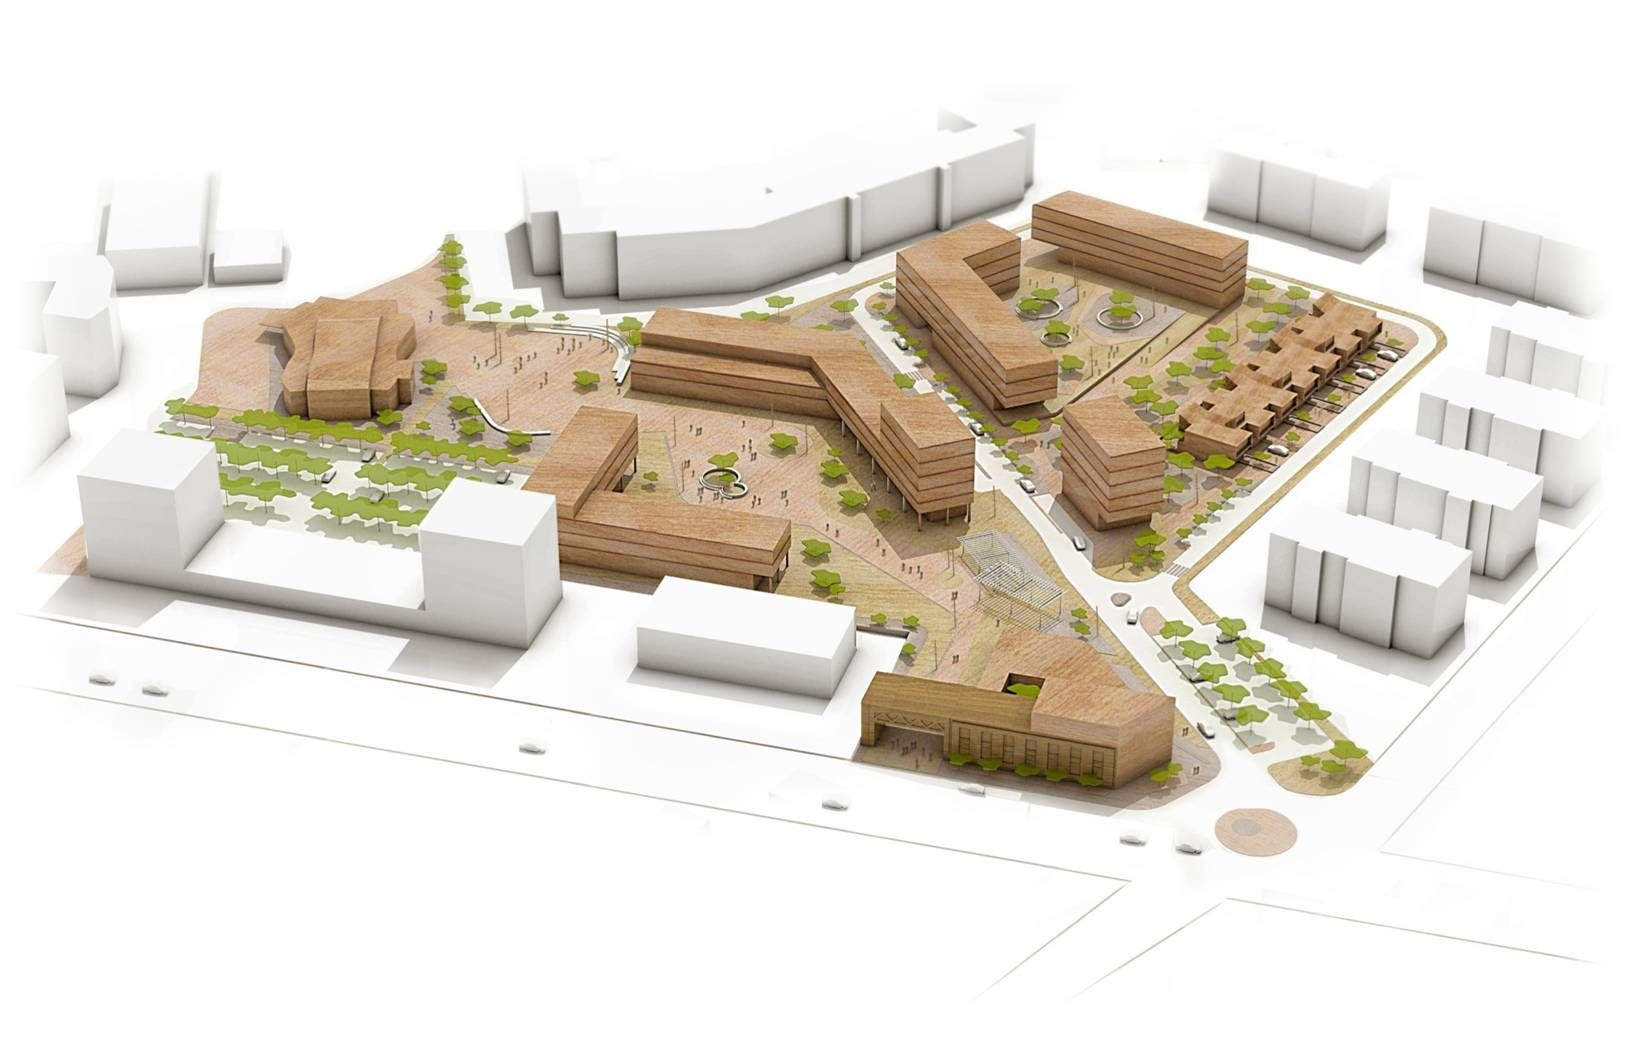 Masterplan of a disused industrial area bergamo italy for Architecture firms in italy